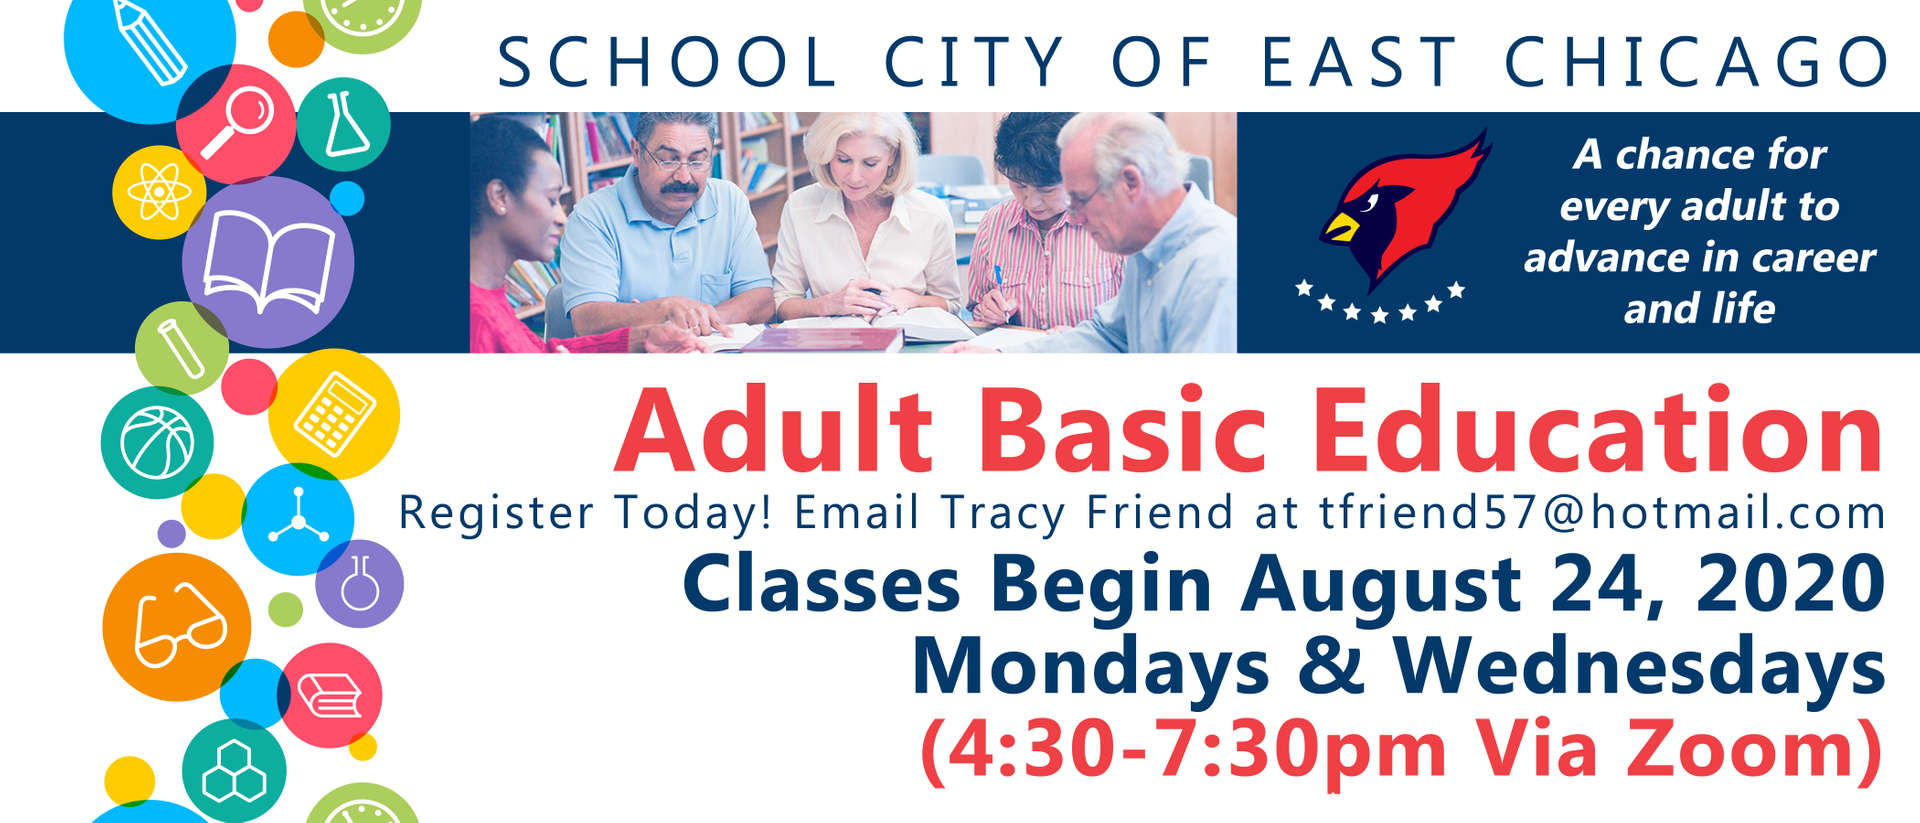 Adult basic education classes